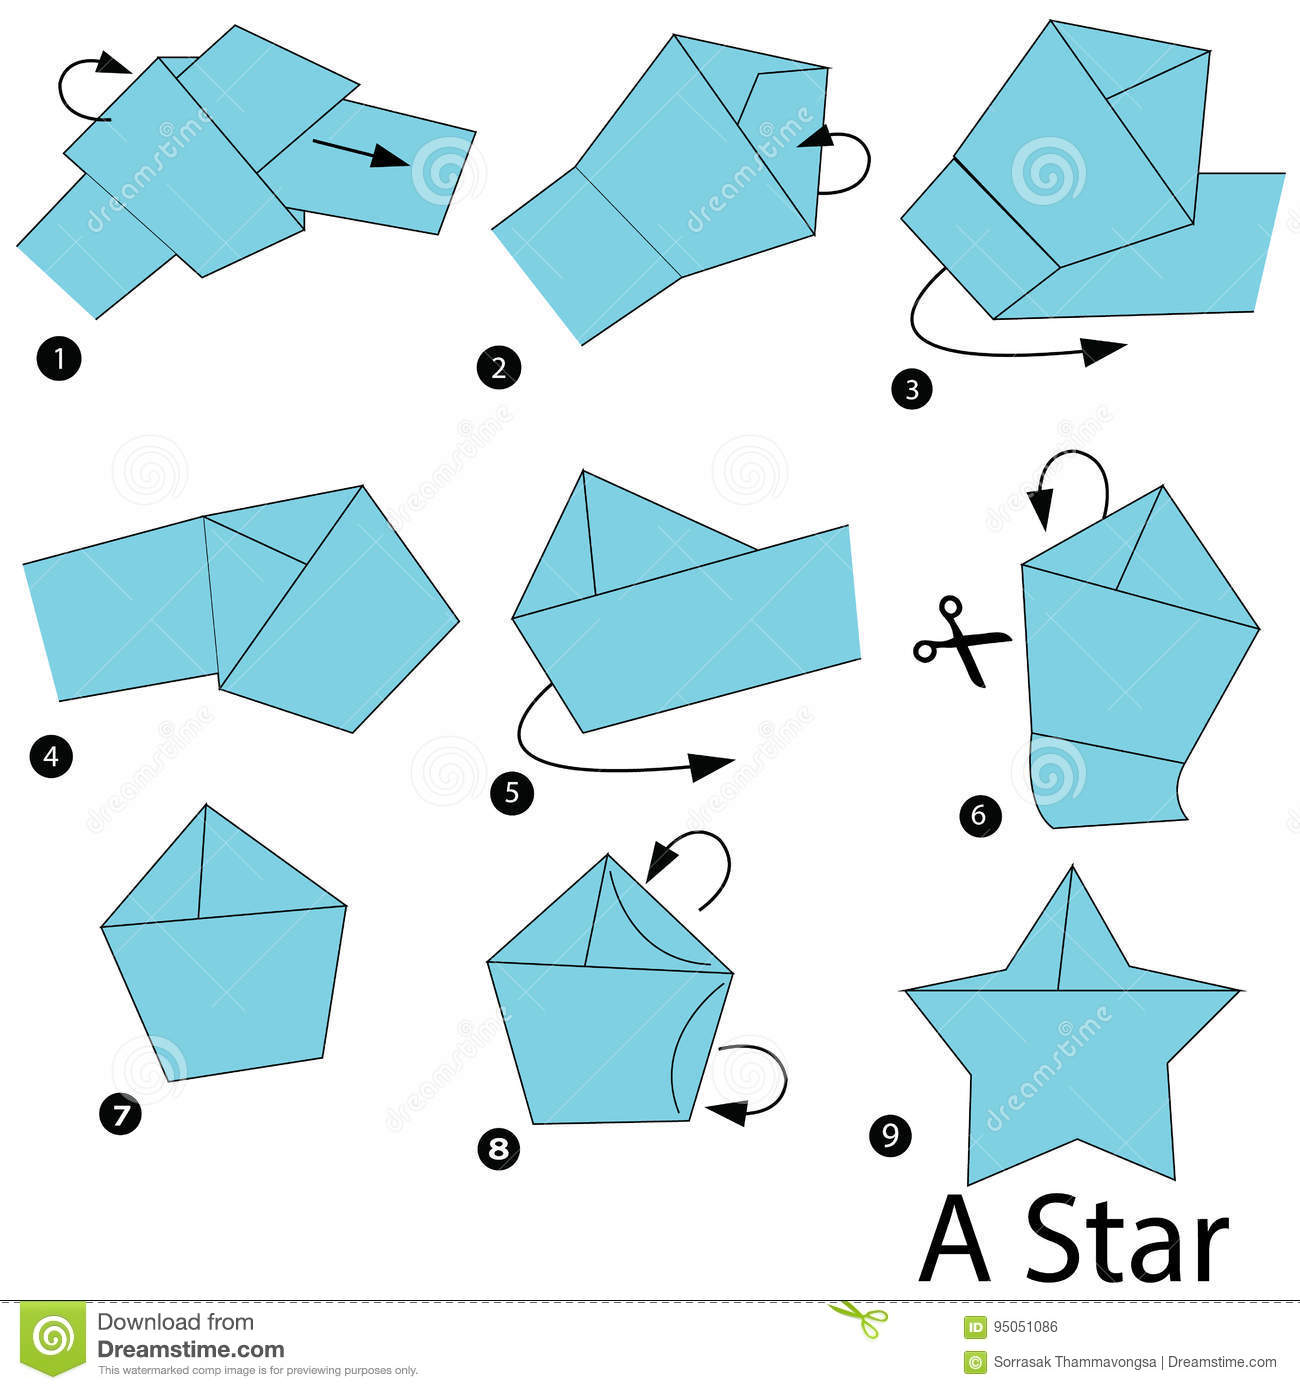 how to make a origami star step by step